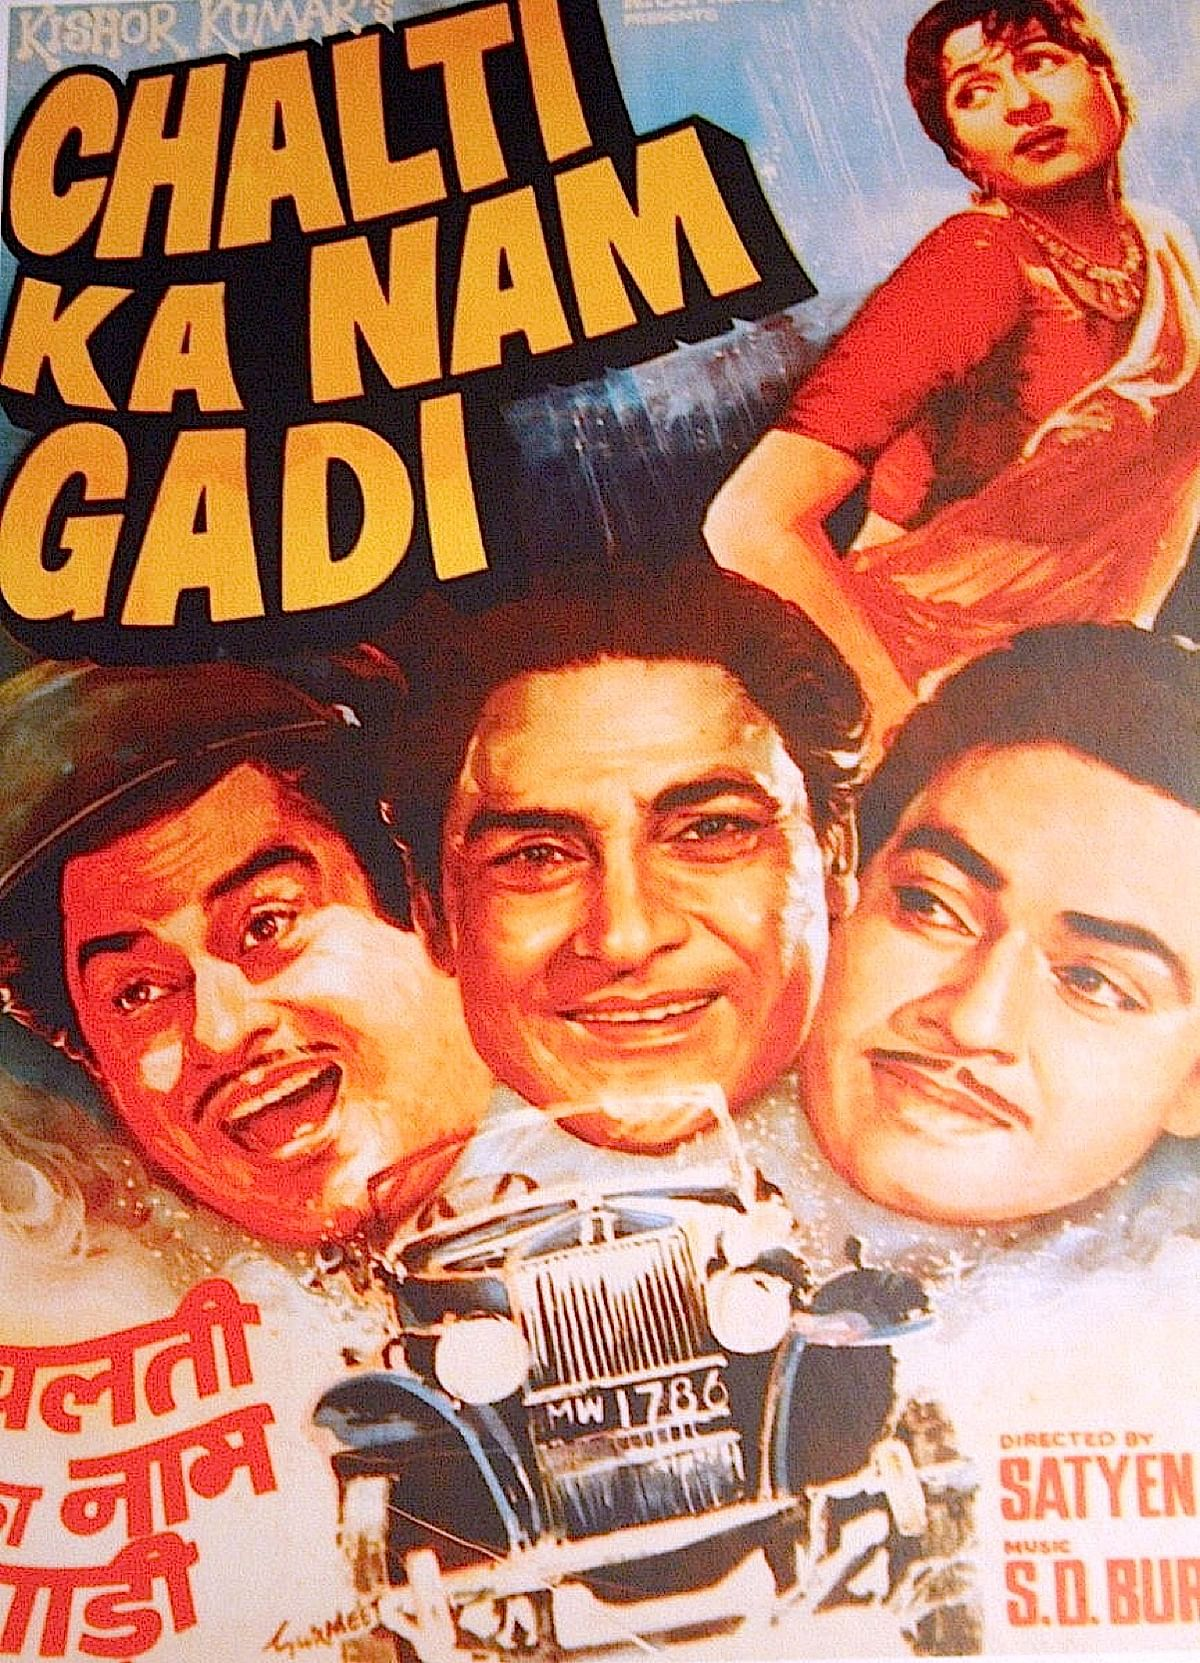 This comedy film remains one of Ashok Kumar's favourites.